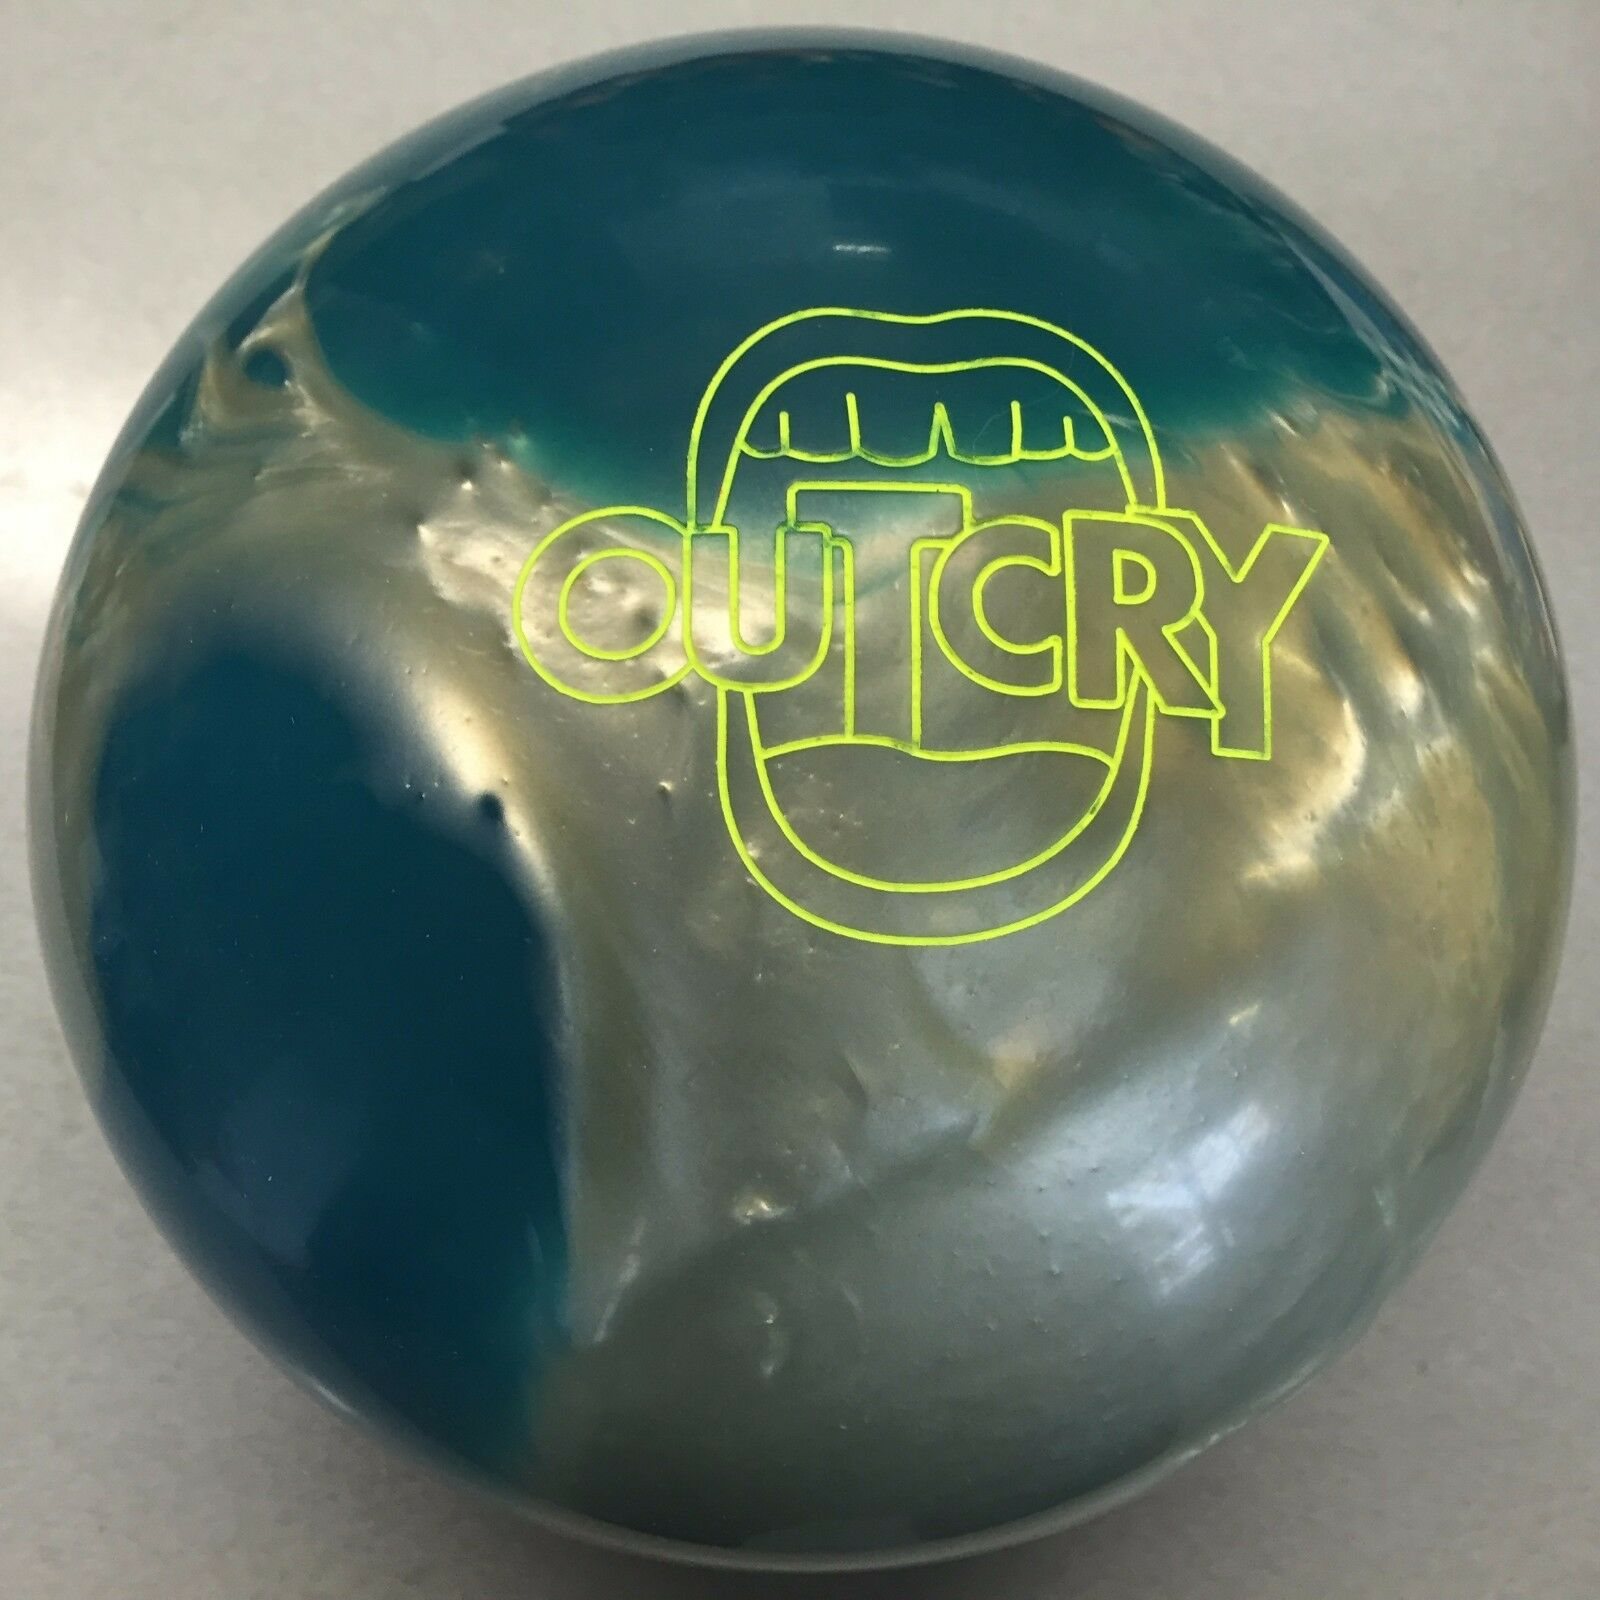 redO GRIP OUTCRY   bowling  ball 16 LB. 1ST QUALITY  NEW UNDRILLED IN BOX